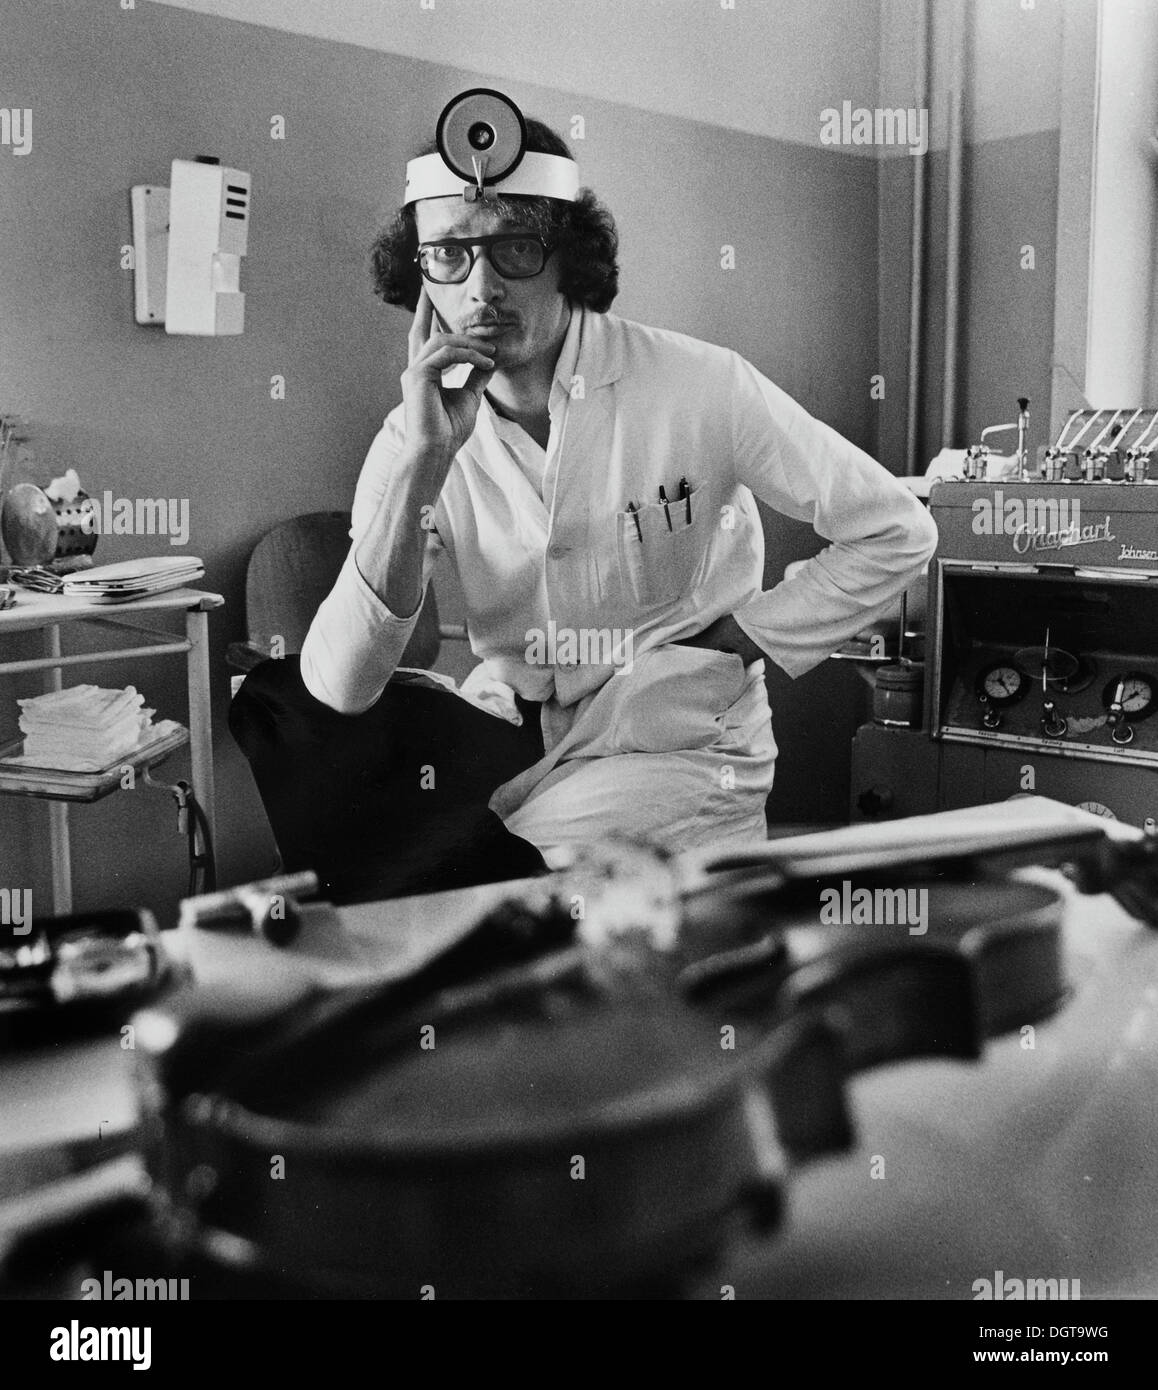 ENT physician with violin, East Germany, around 1974 - Stock Image